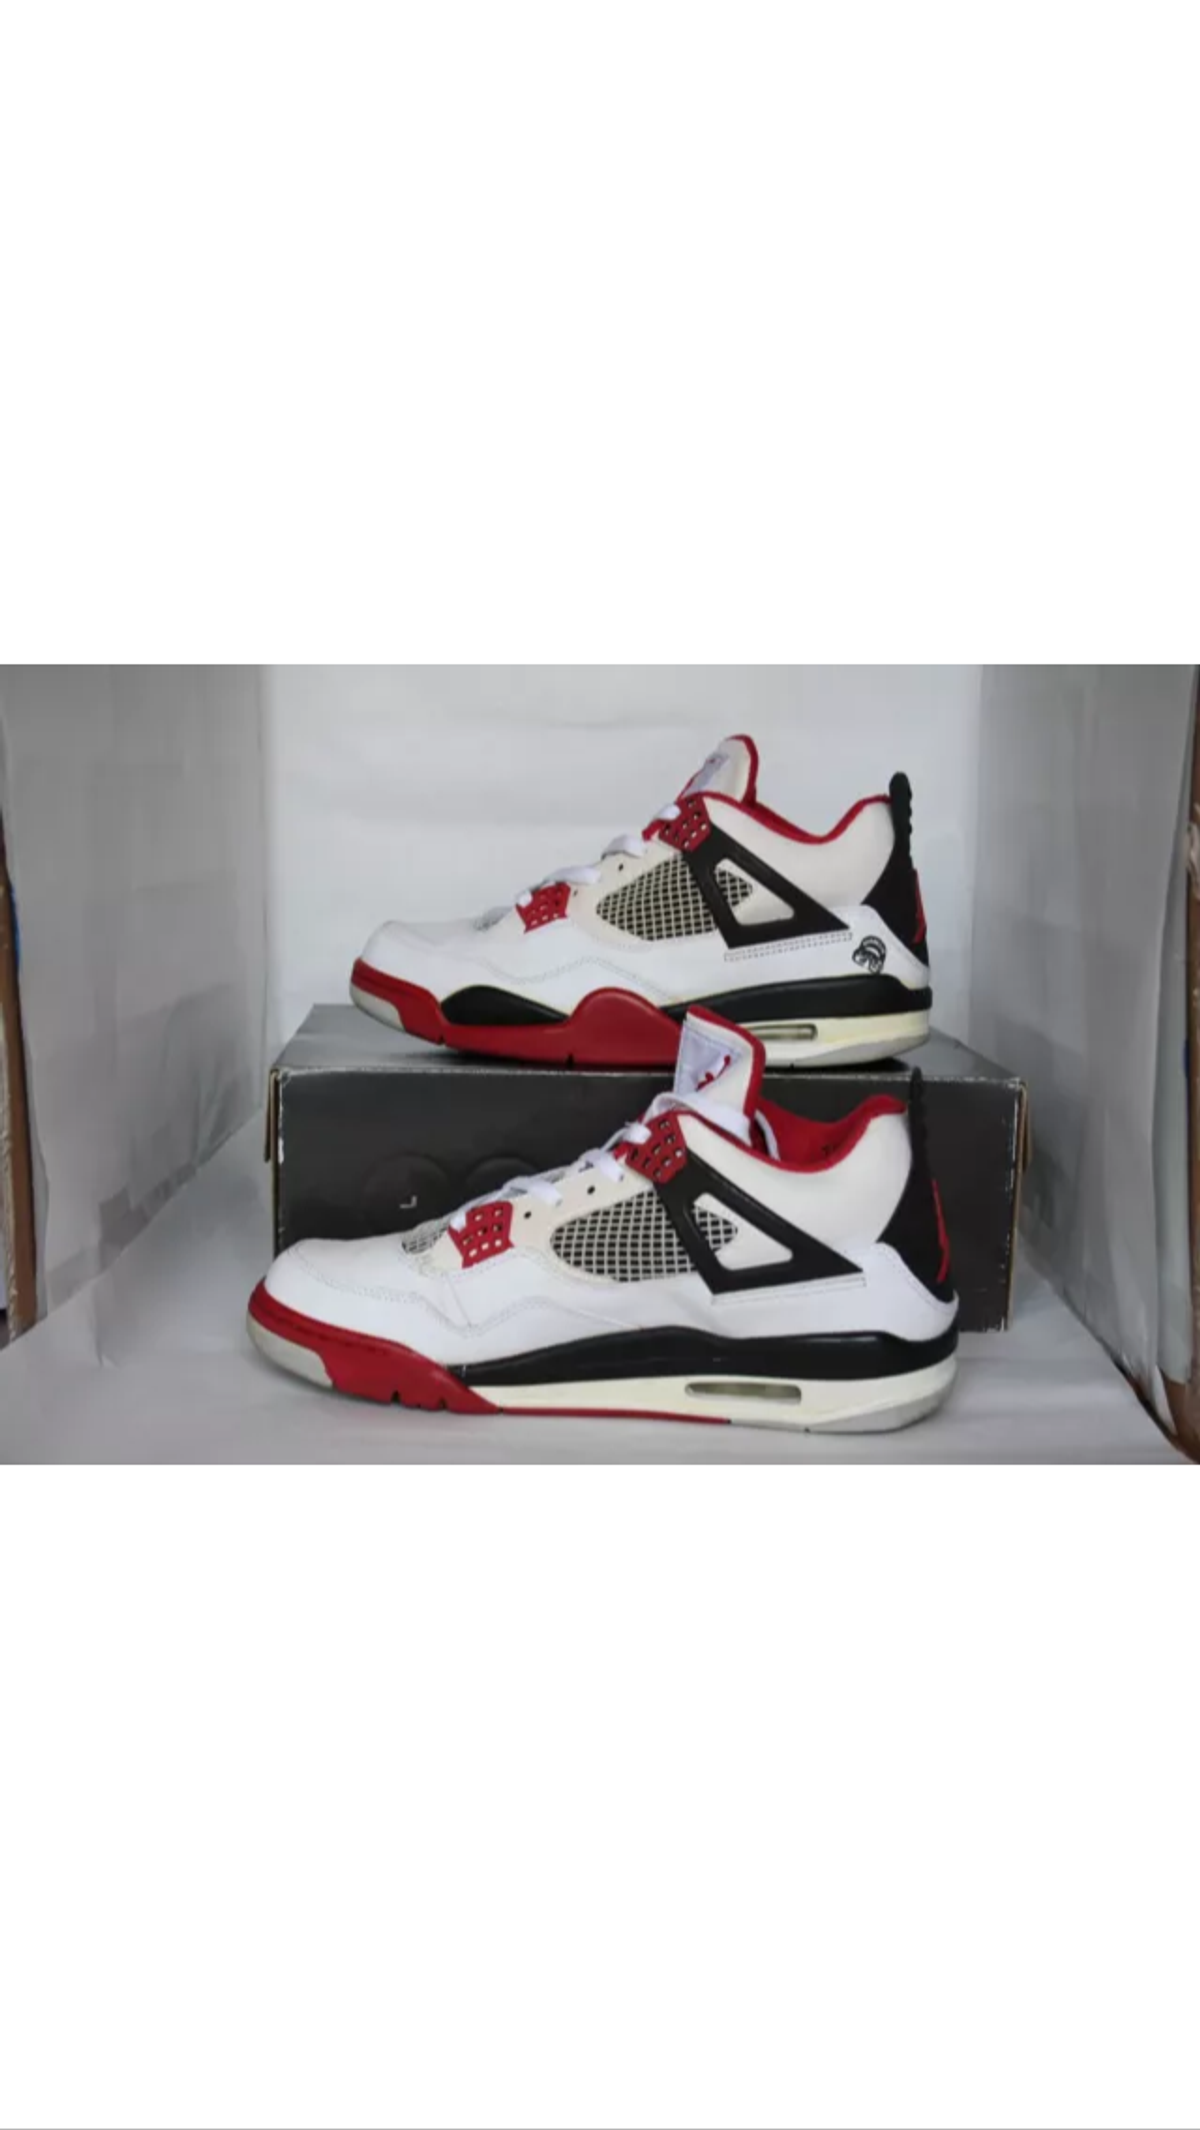 premium selection bc604 68a4b Nike Nike Air Jordan Iv 4 Retro Spike Lee Mars Blackmon   Grailed